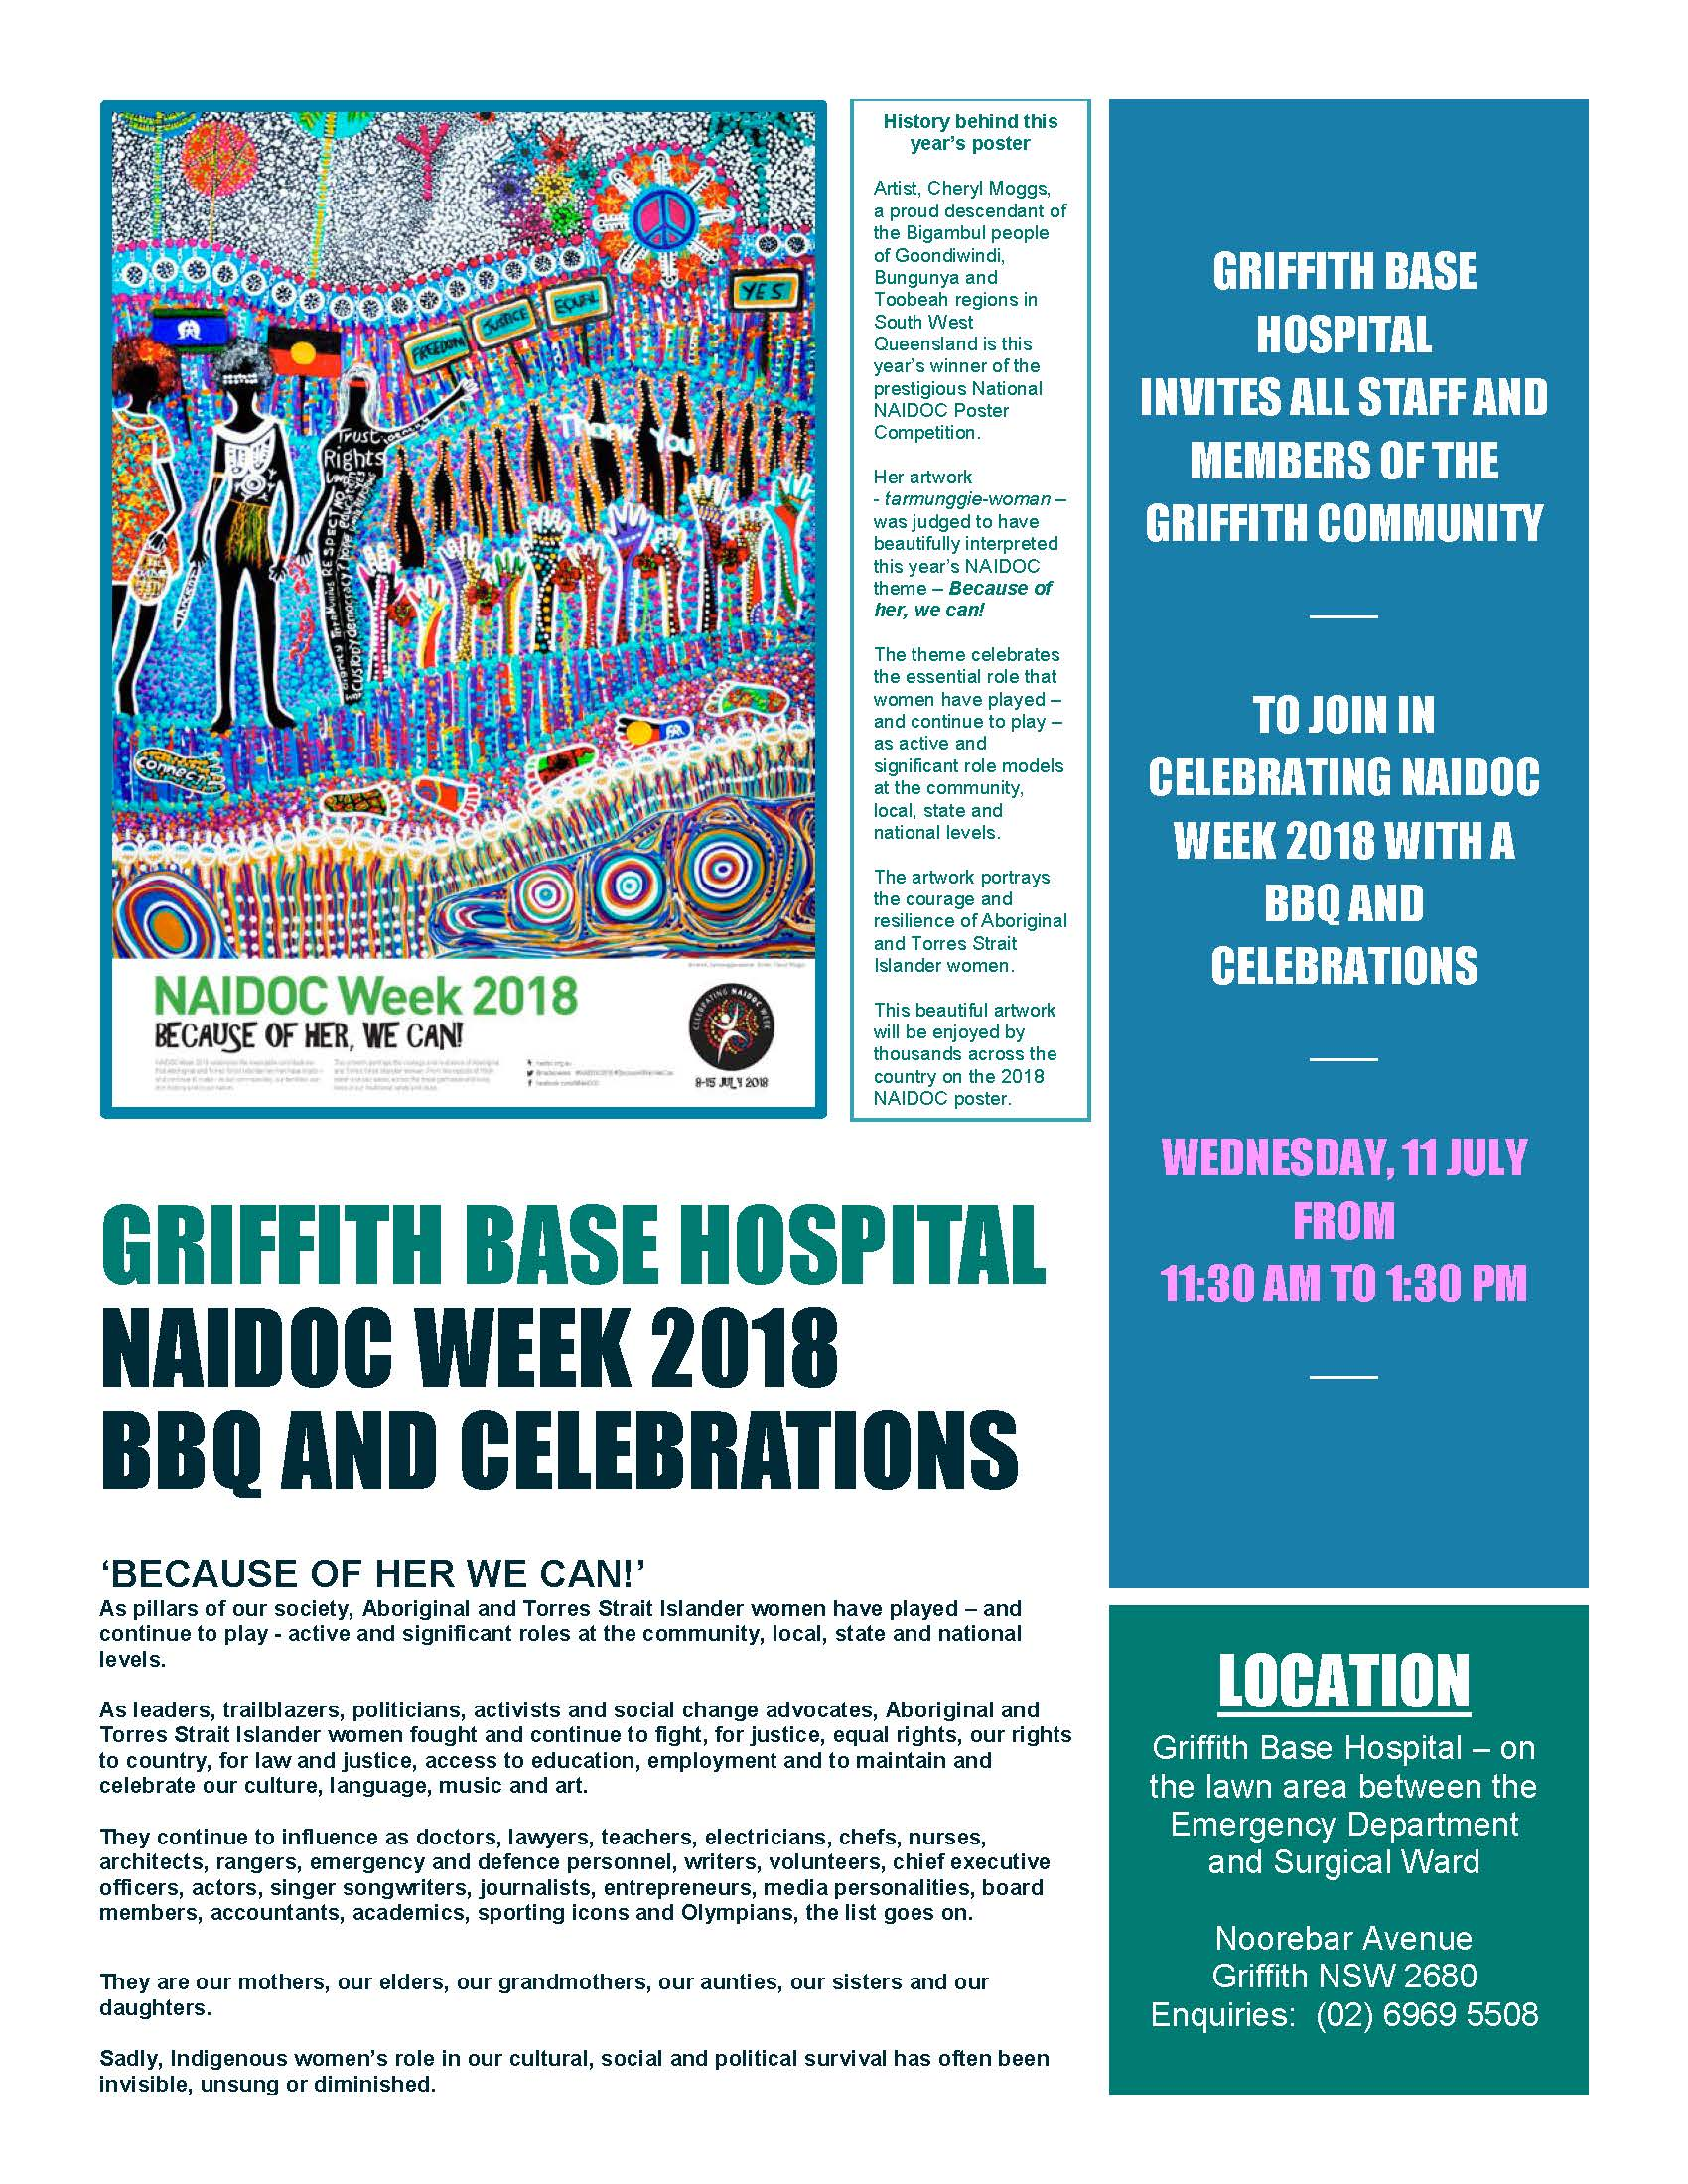 Griffith Base Hospital NAIDOC Week 2018 BBQ and Celebrations